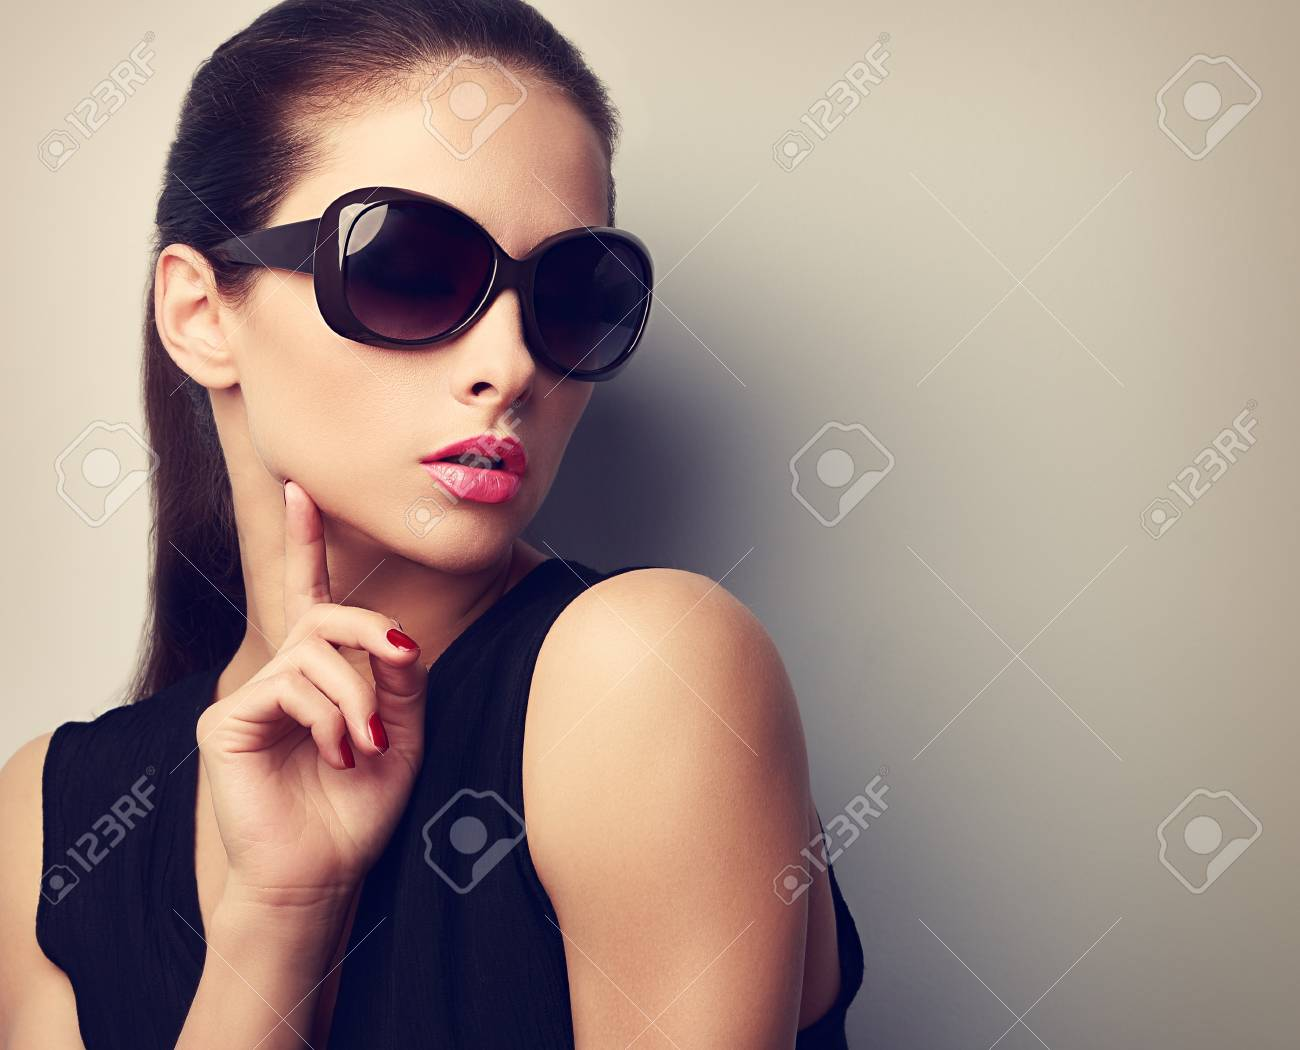 1ee931ffc3d1 Elegant young female model in trendy sunglasses posing touching hand the  face. Vintage closeup portrait